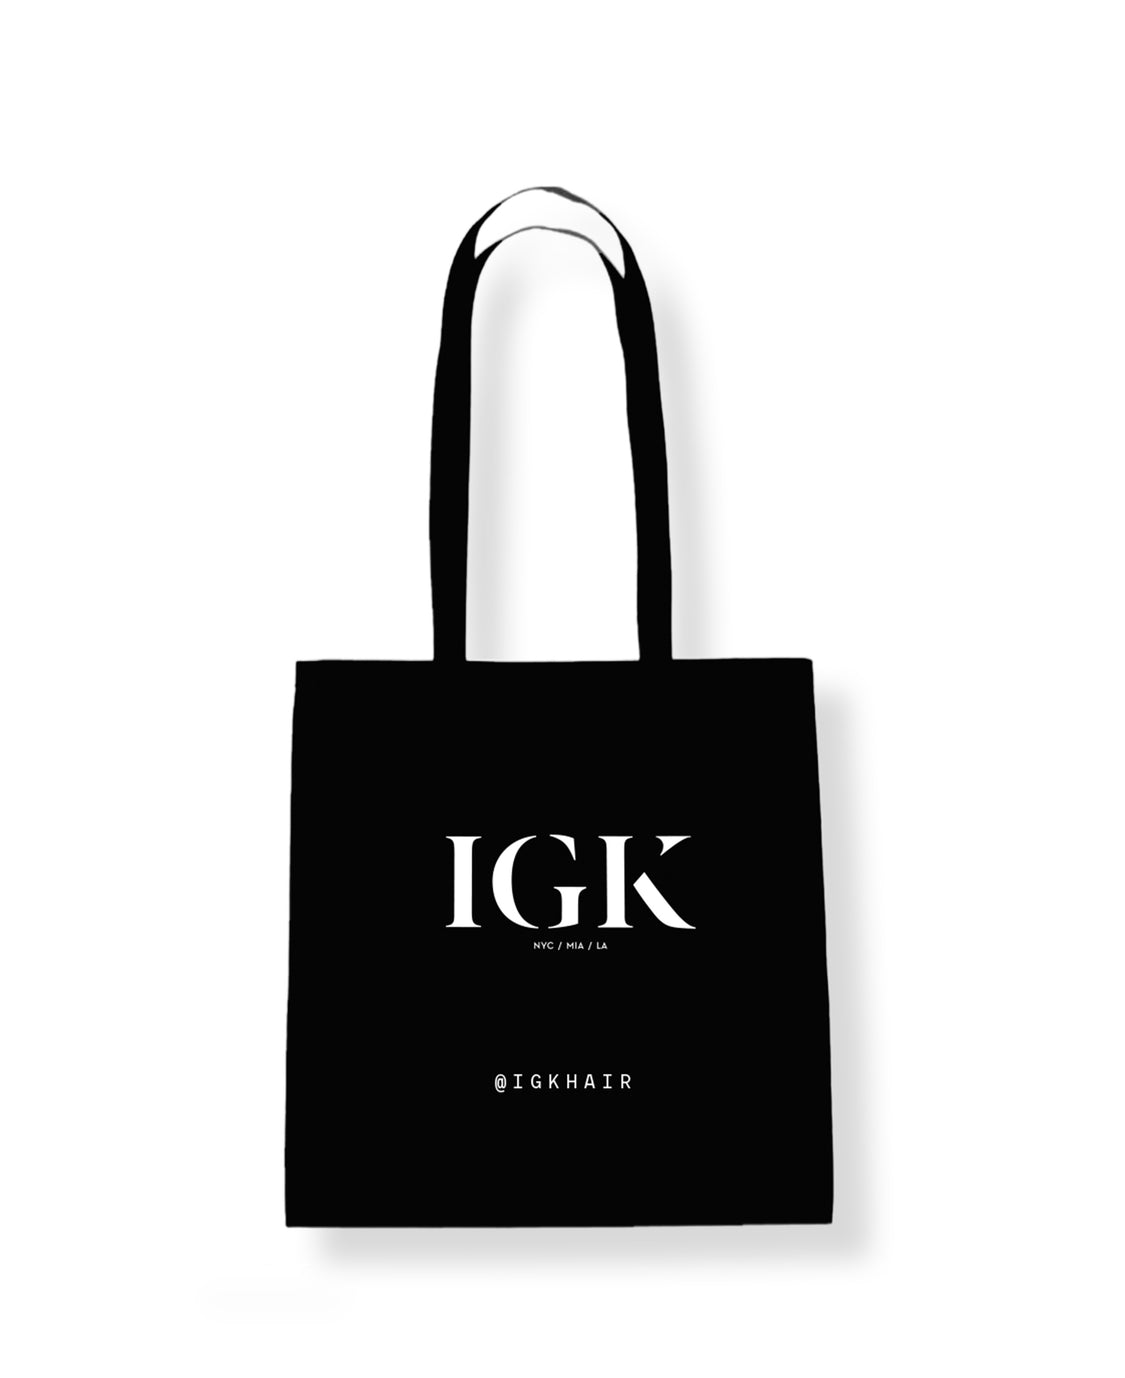 In The Bag IGK Tote